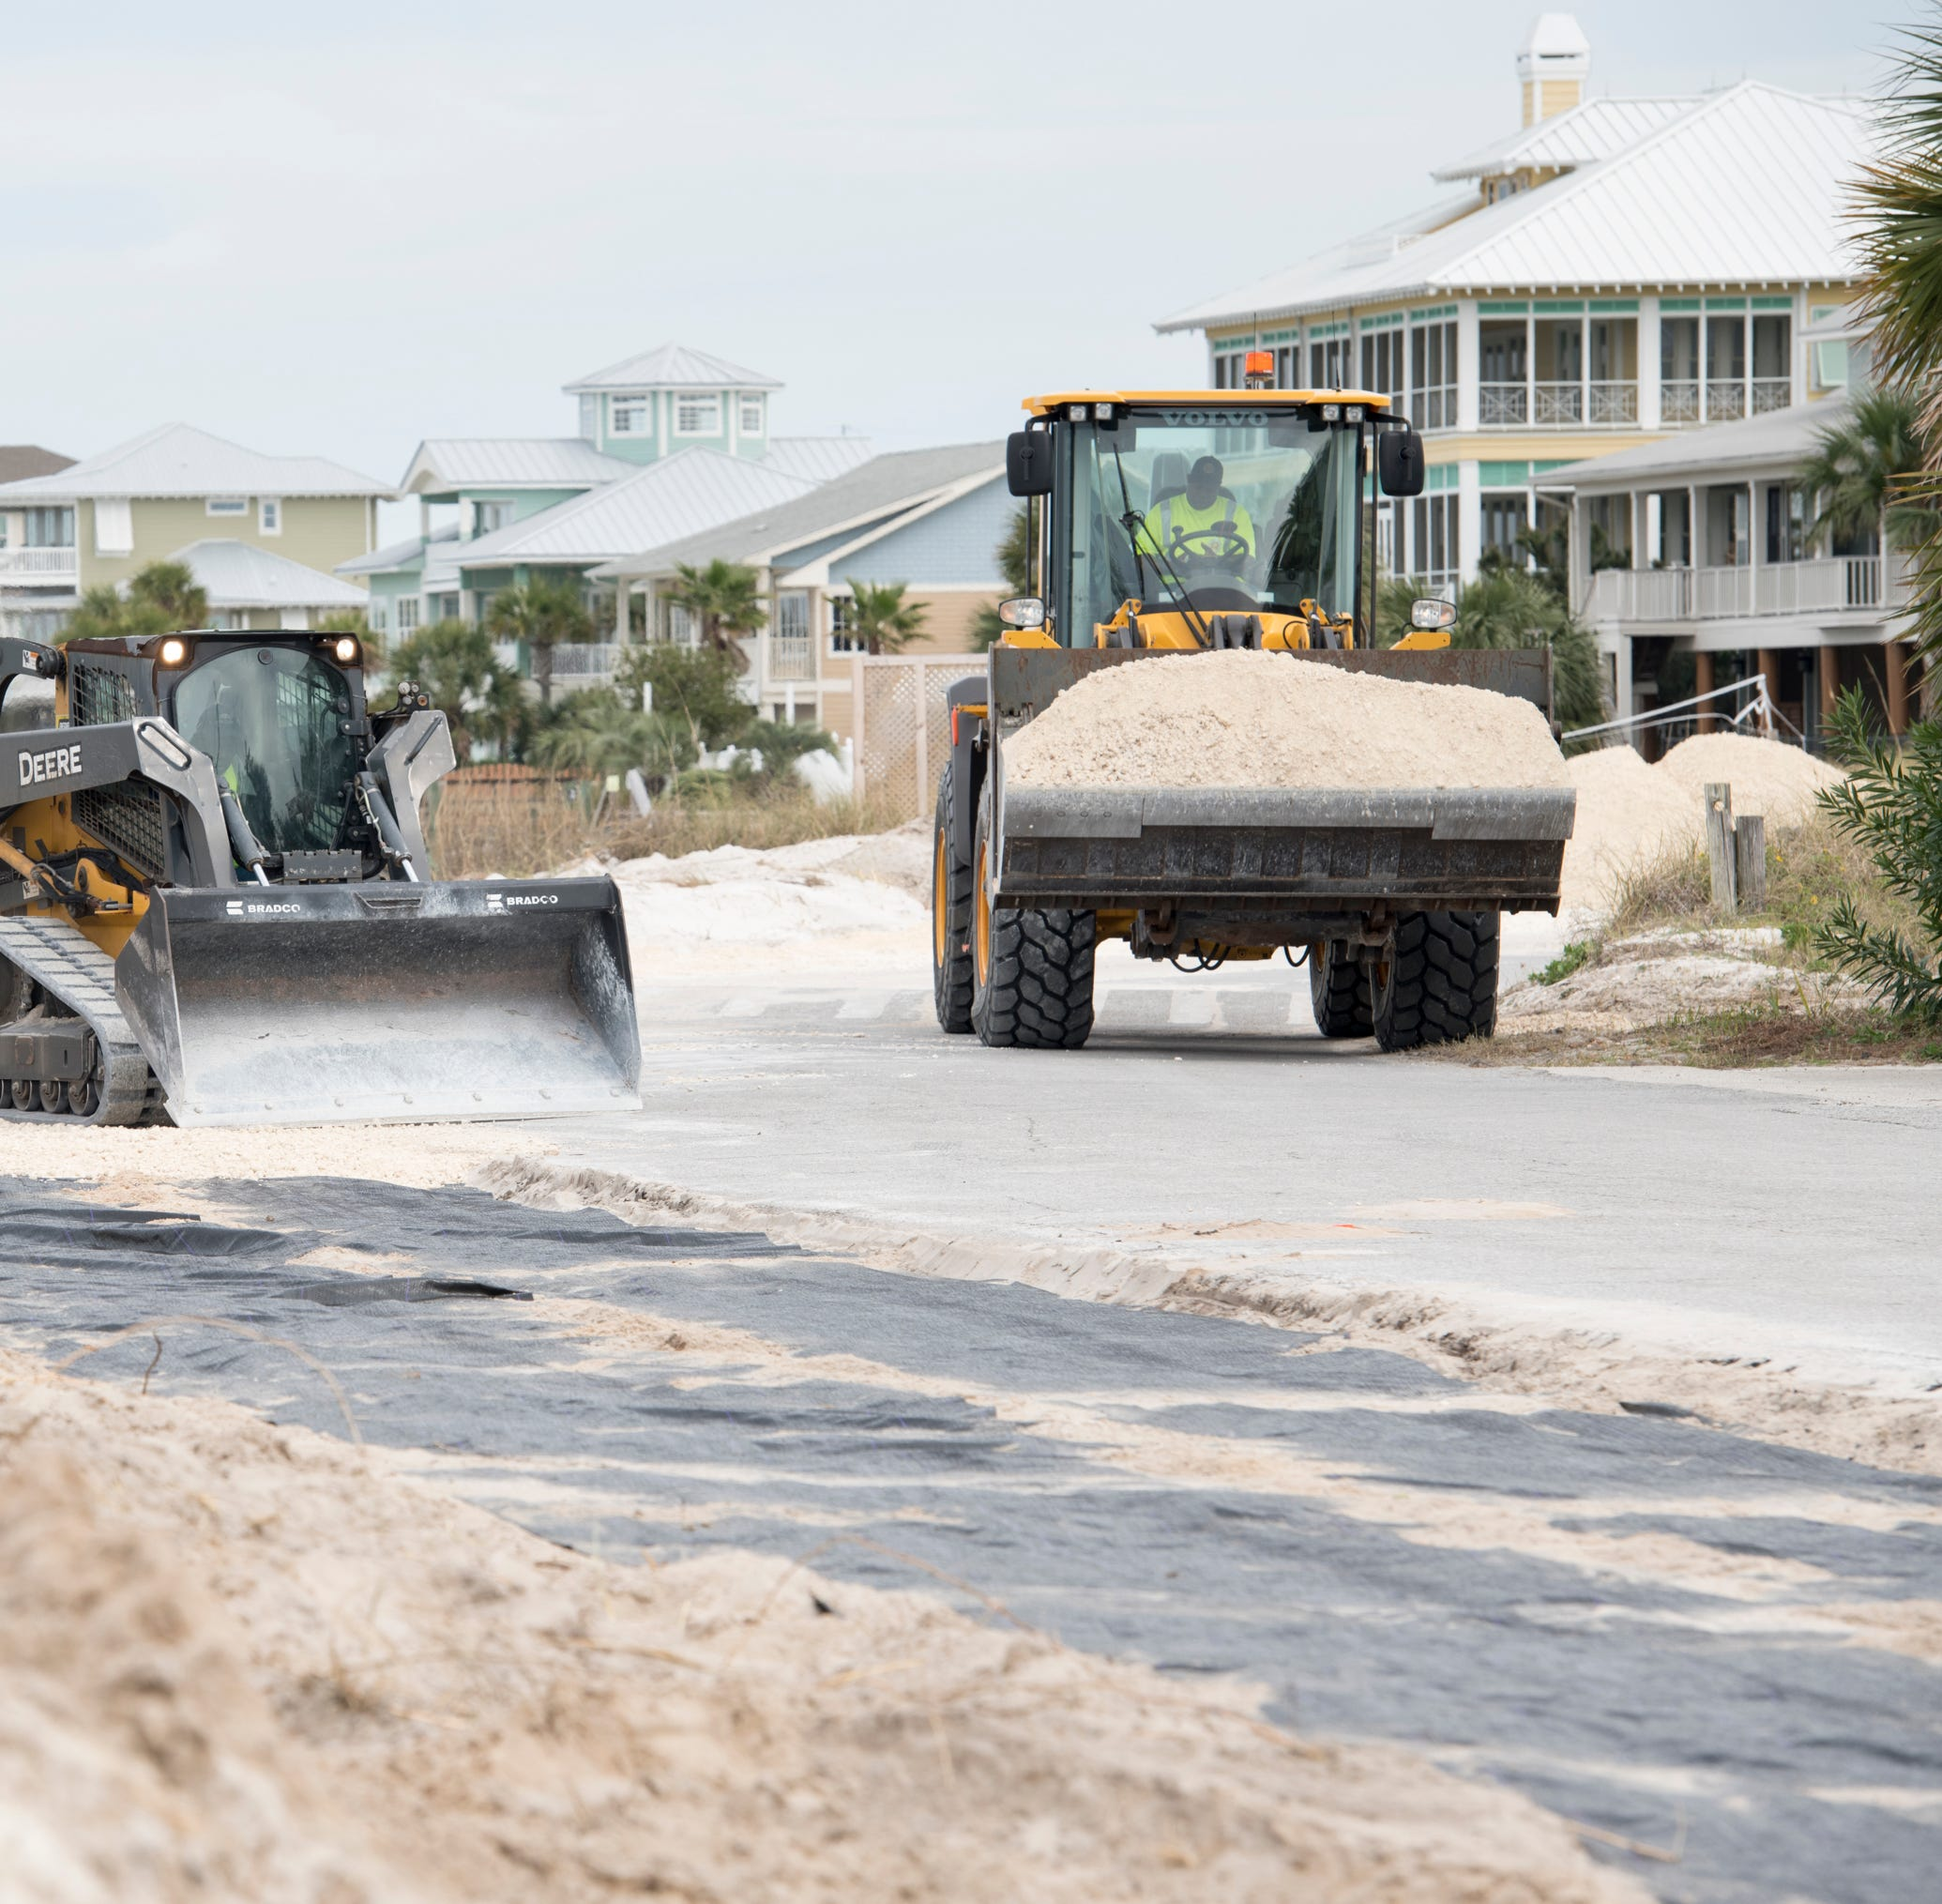 Pensacola Beach residents upset over public parking expansion, right-of-way clearing